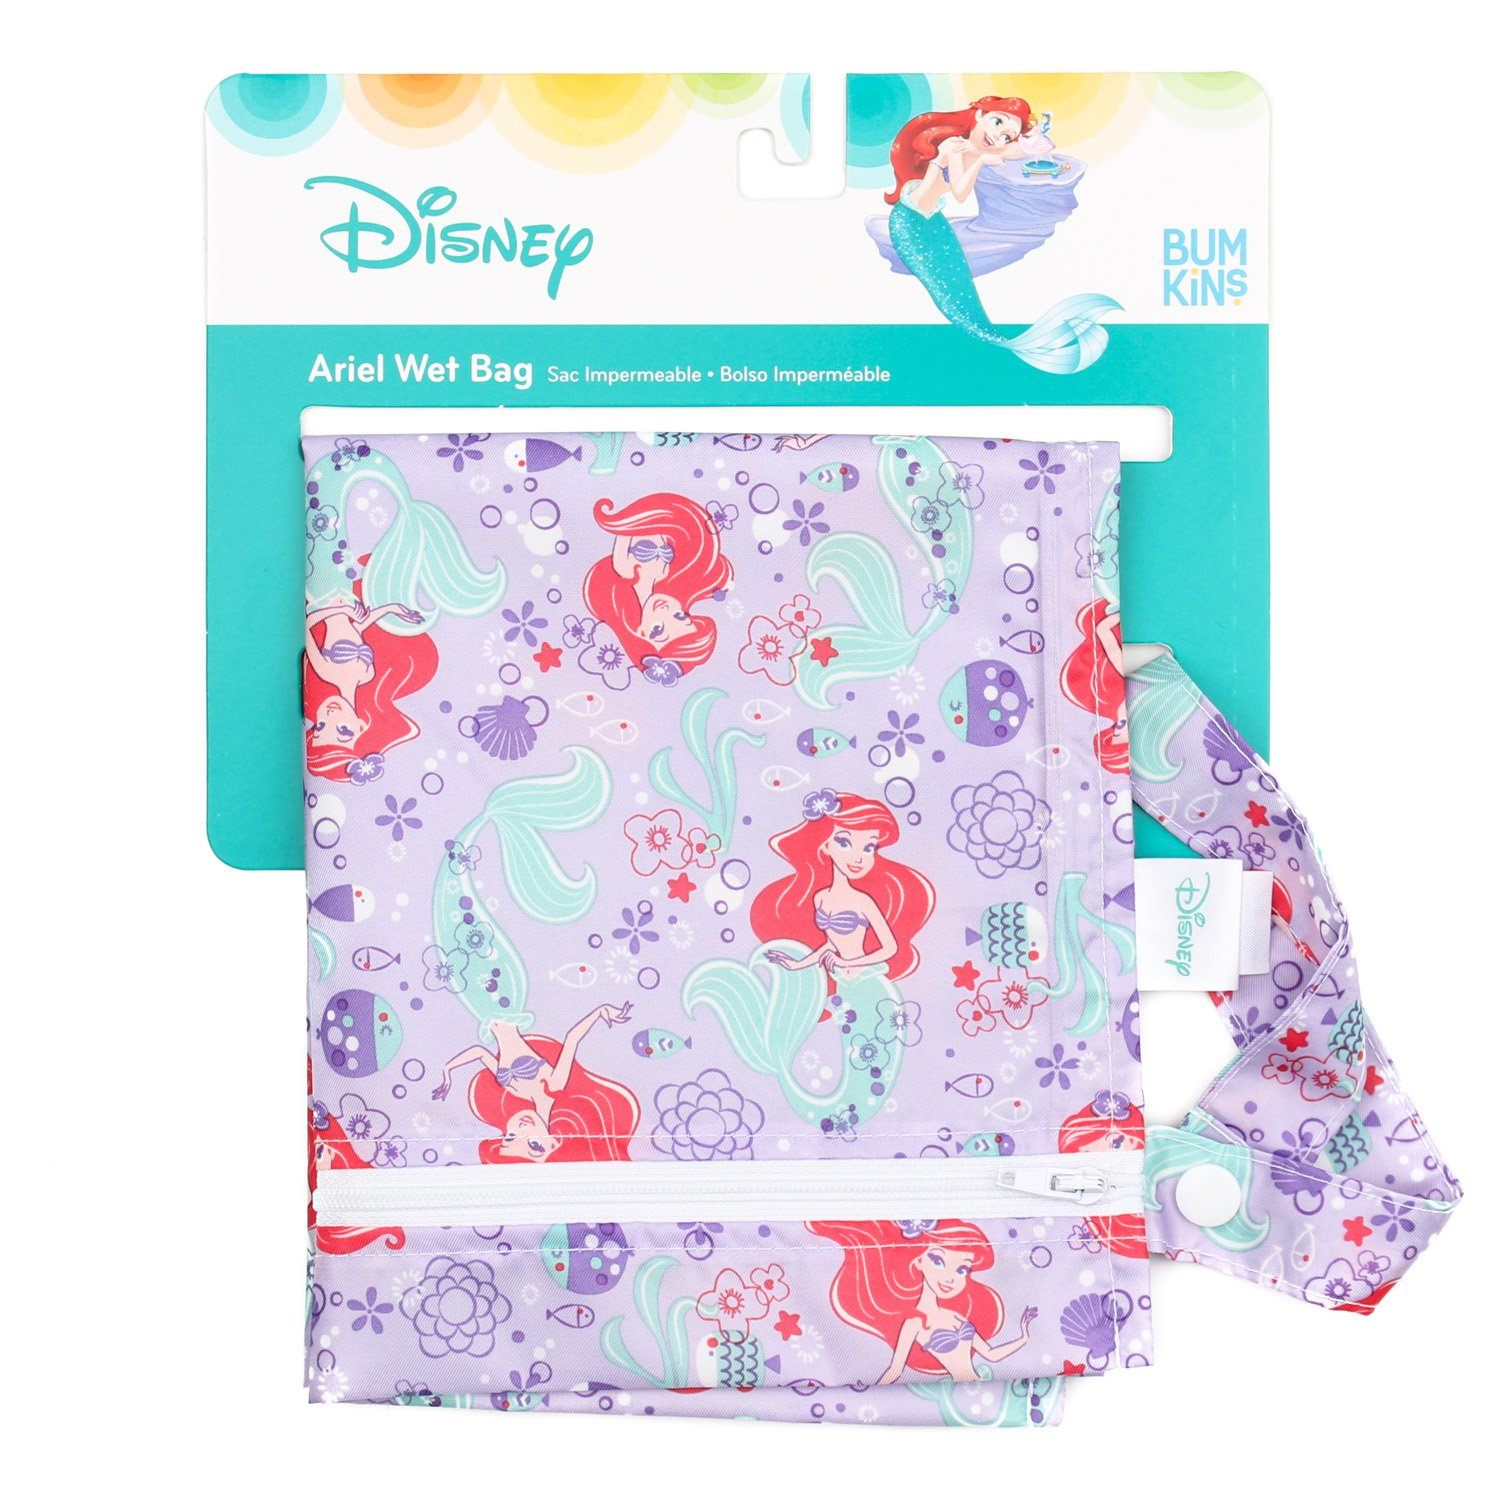 Disney Ariel Wet Bag - Three LiL Monkeys Three LiL Monkeys